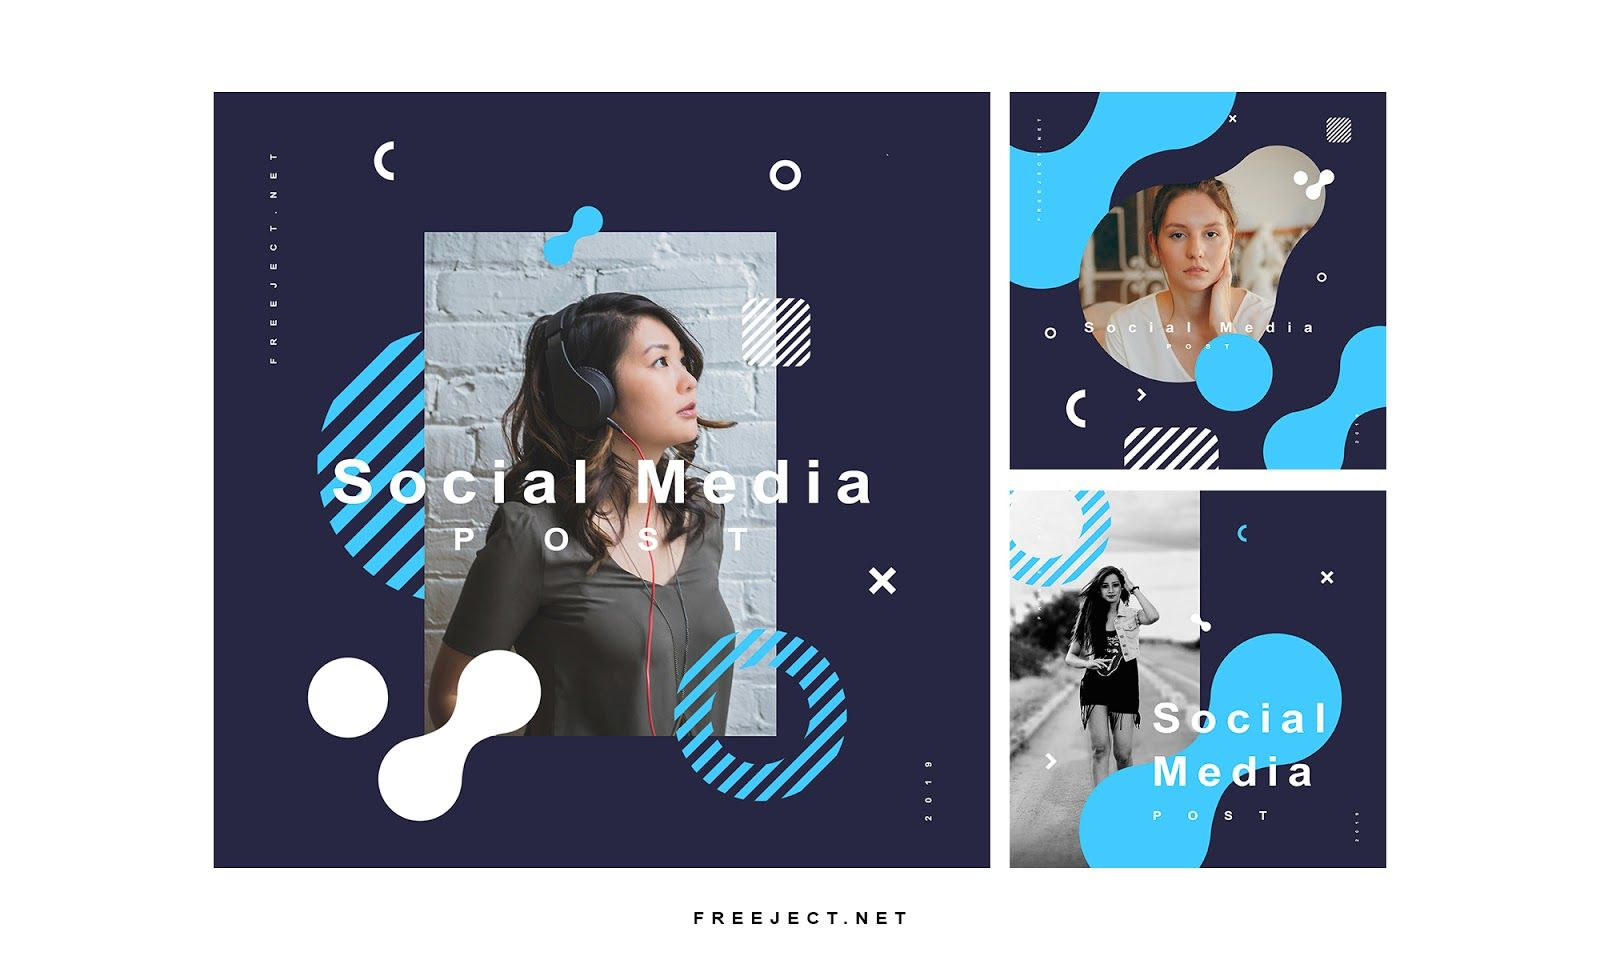 Freeject Net Free Download Social Media Post Template Vol 2 P Social Media Post Social Media Free Graphic Design